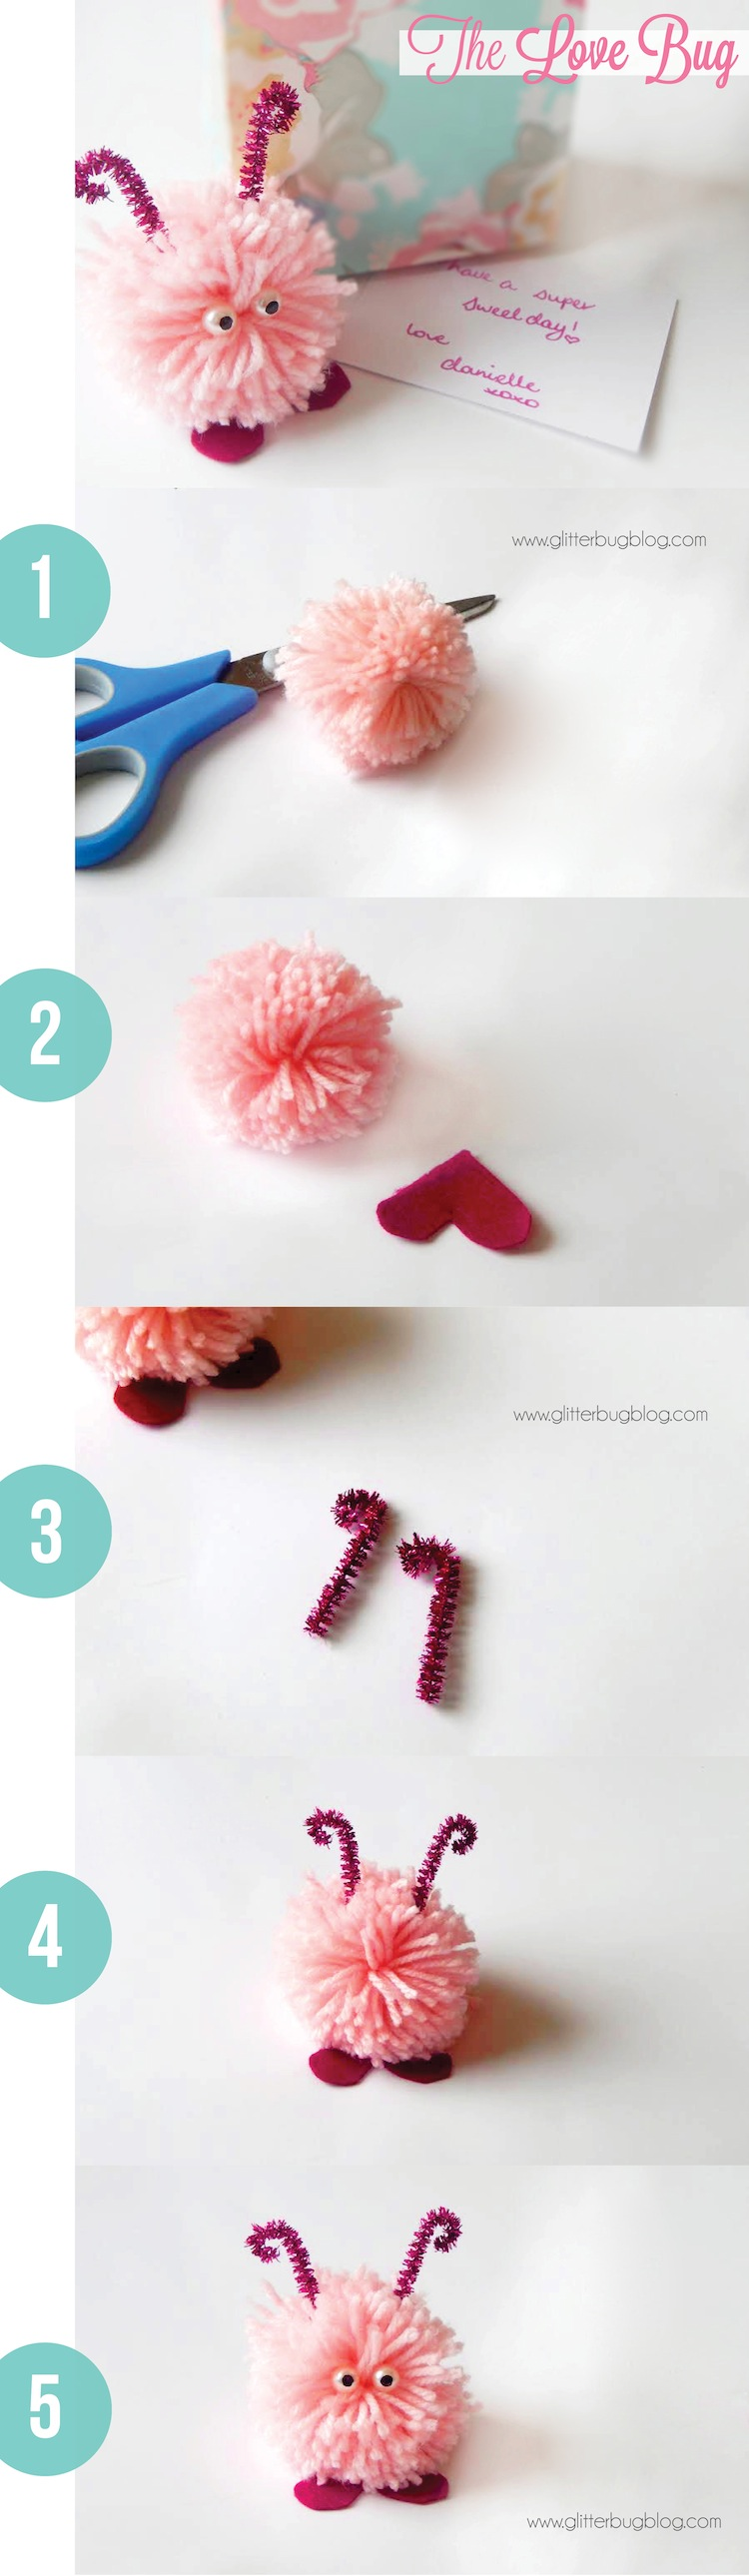 Valentine love bug craft - How To Make A Love Bug For Valentine S Day